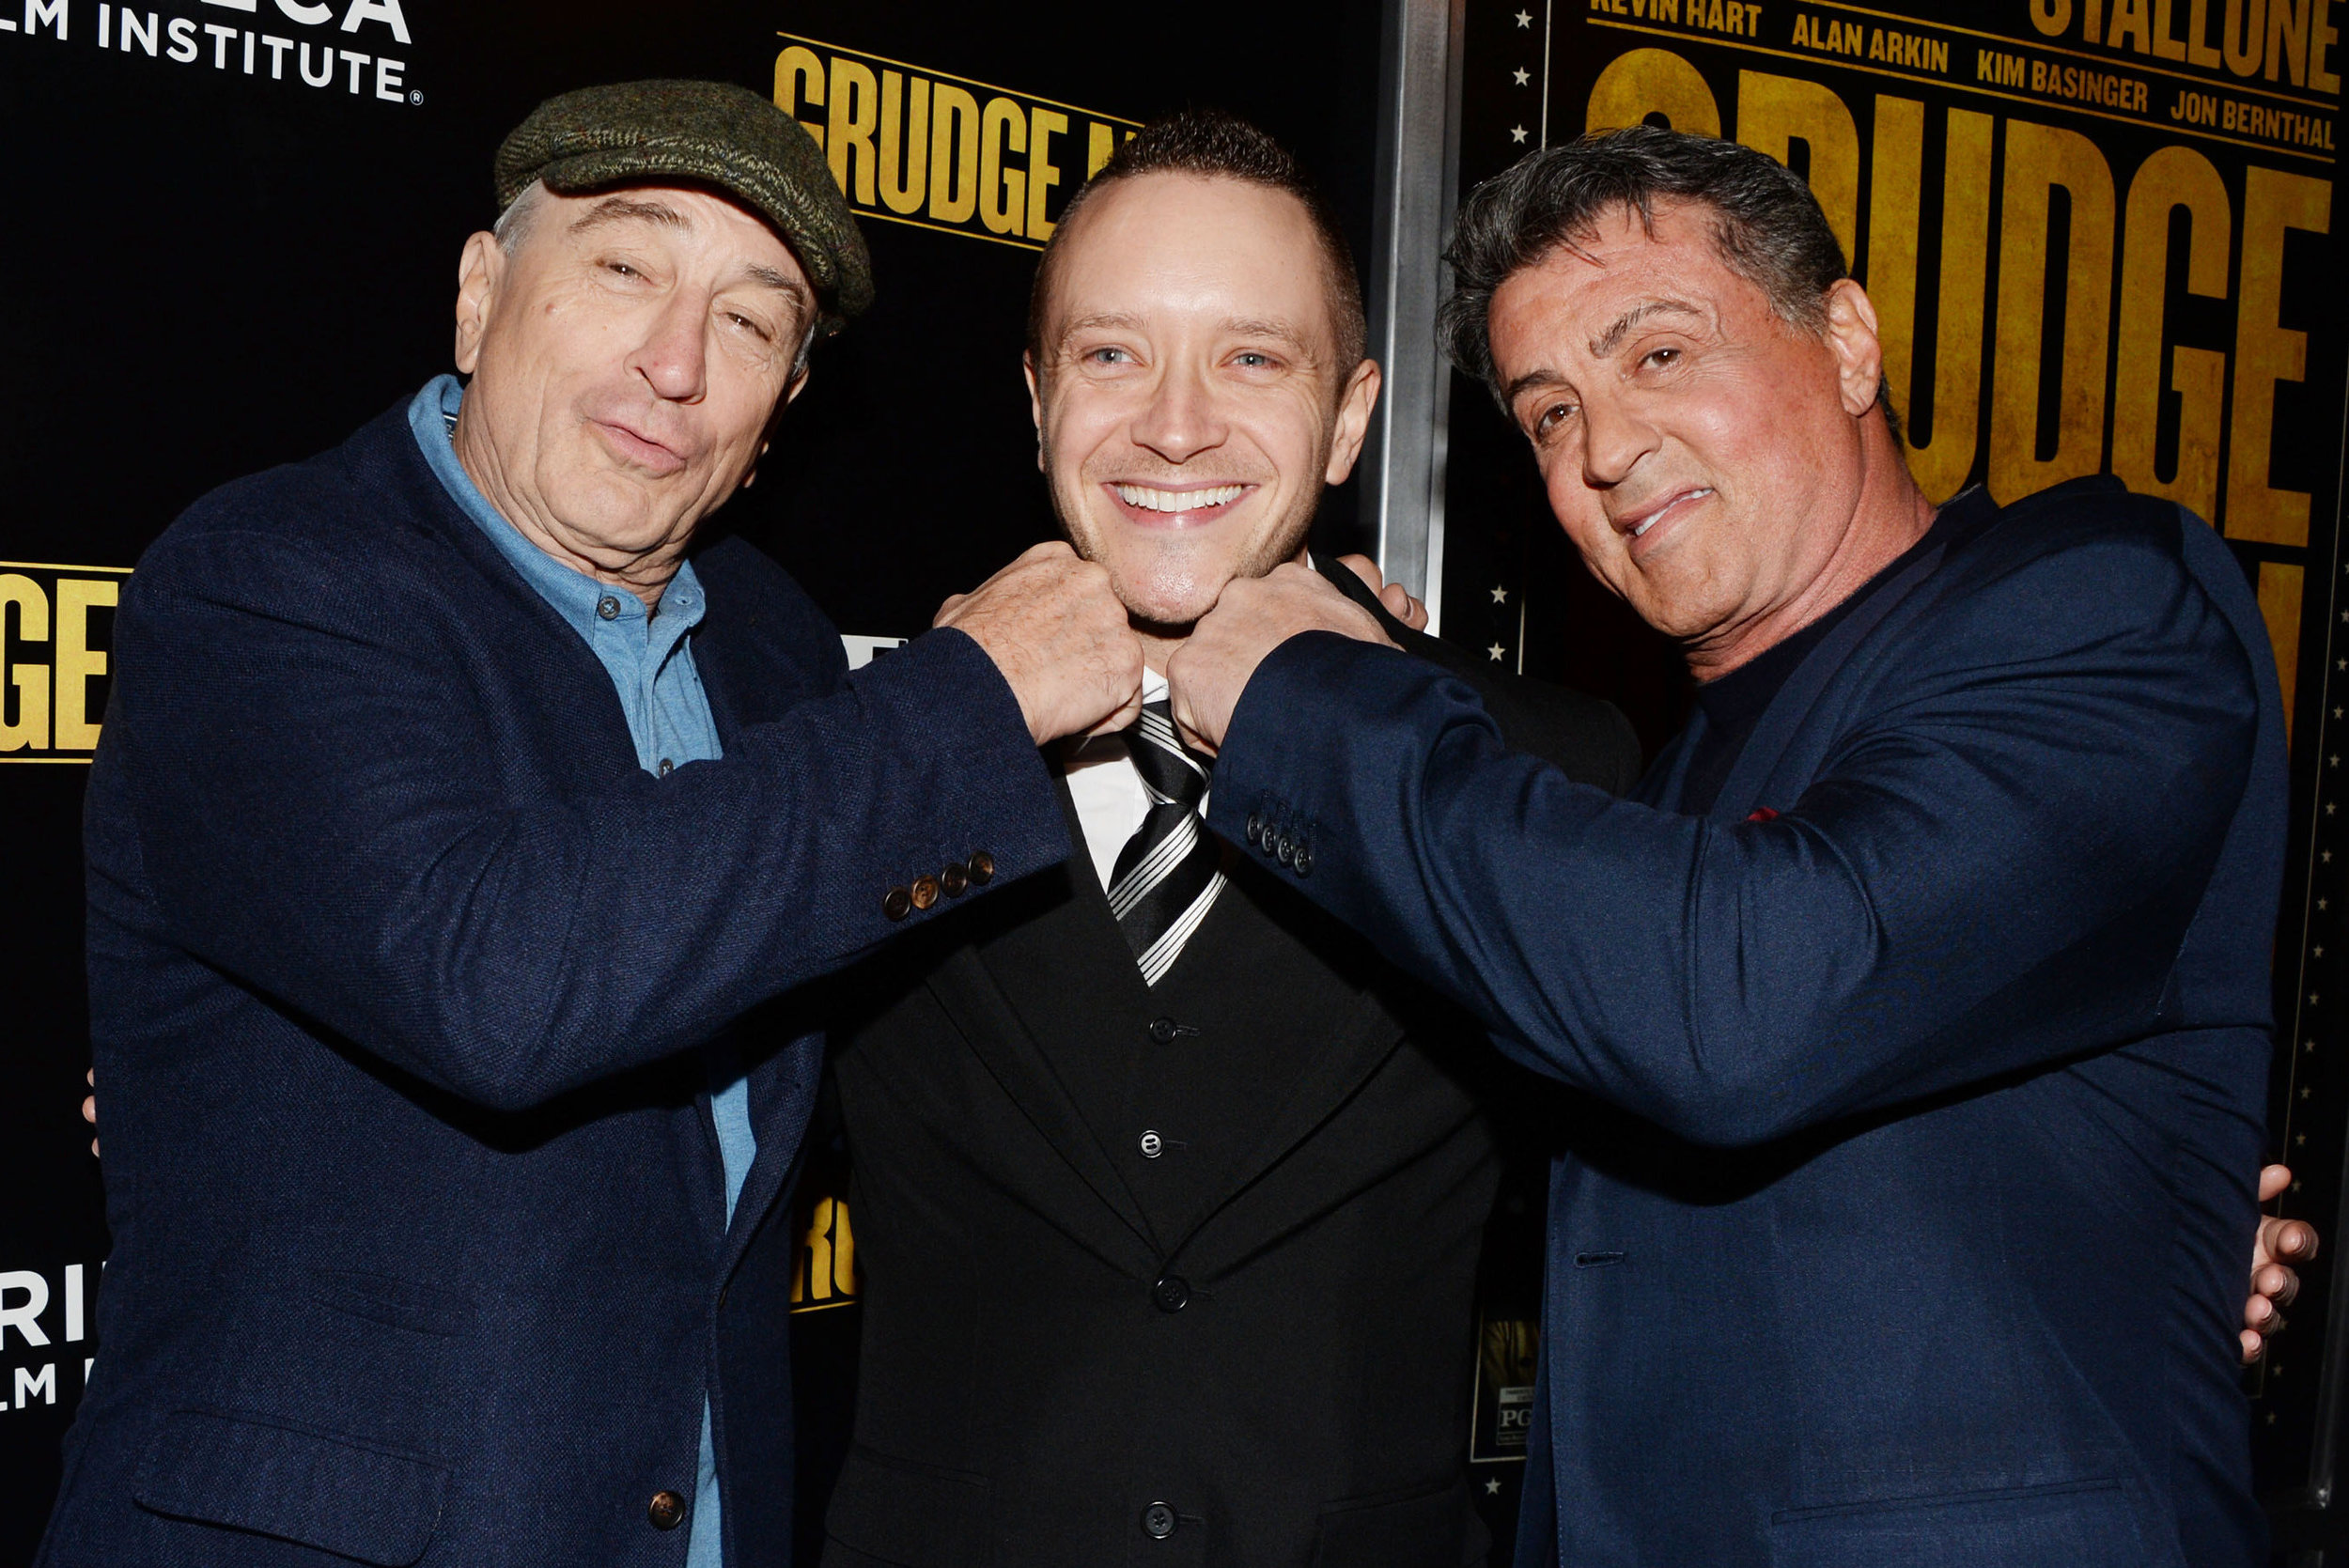 'TAKING ONE ON THE CHIN FROM THE RAGING BULL & ROCKY'! - Celebrating the World Premiere of 'Grudge Match'in NYC with the legendary Robert De Niro & Sylvester Stallone. I'll be forever grateful to both men for the time and guidance offered to me.